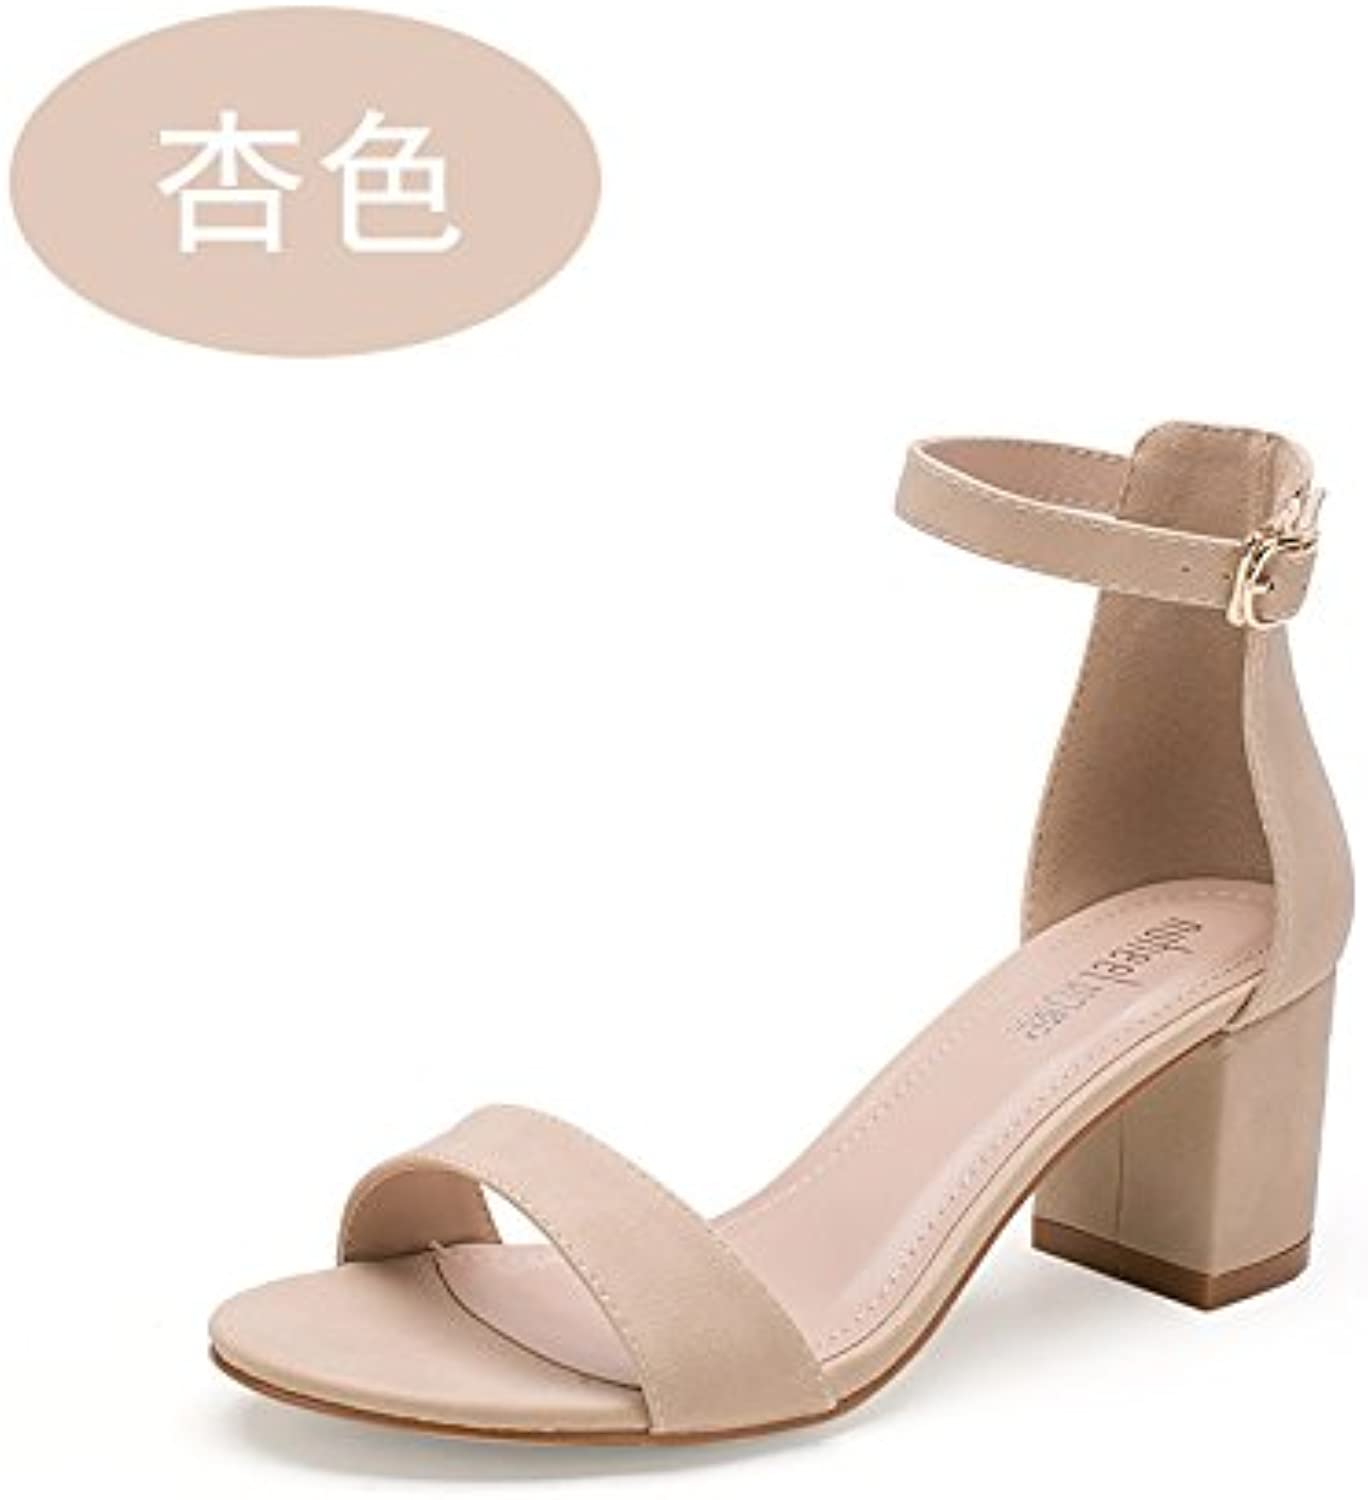 c769835265a SHOESHAOGE Summer Roma Sandals Shoes Heel Heels With A A A Thick Heel Shoes  Women S Shoes B0753LLGVP Parent 2911a2